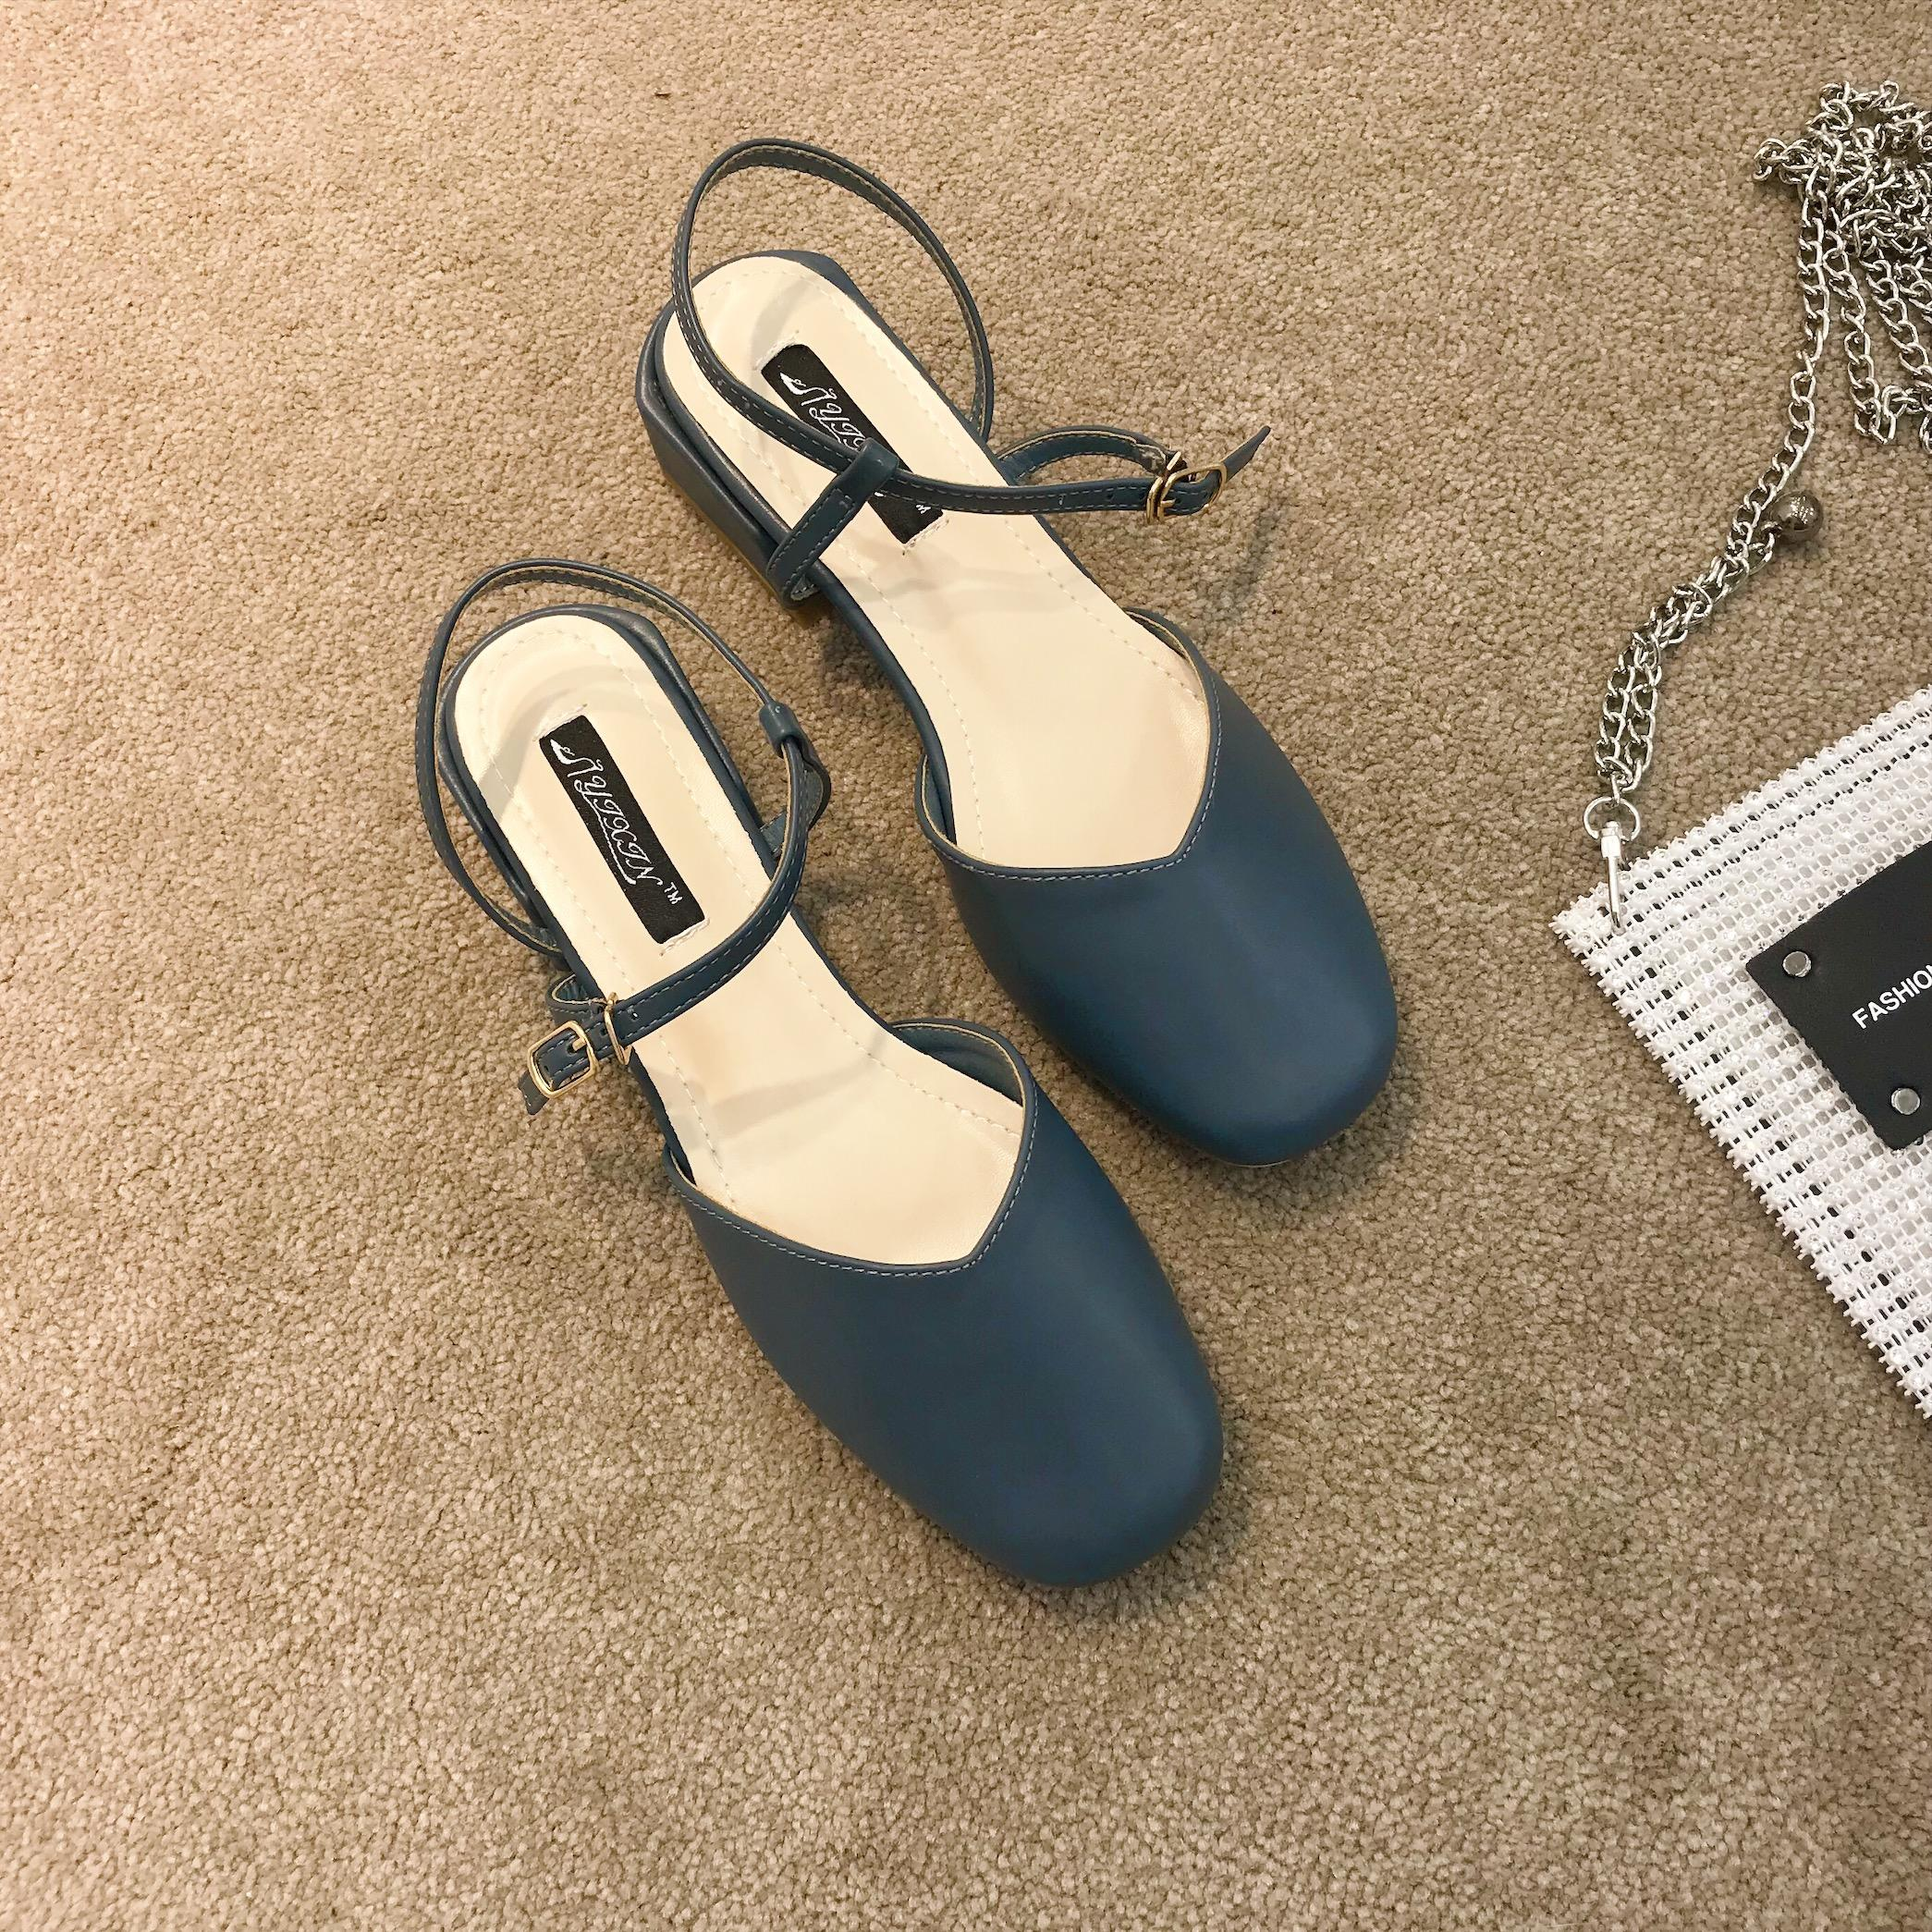 329d4a6f270 High-heeled Sandals women 2019 New Style Summer Closed-toe A-line with